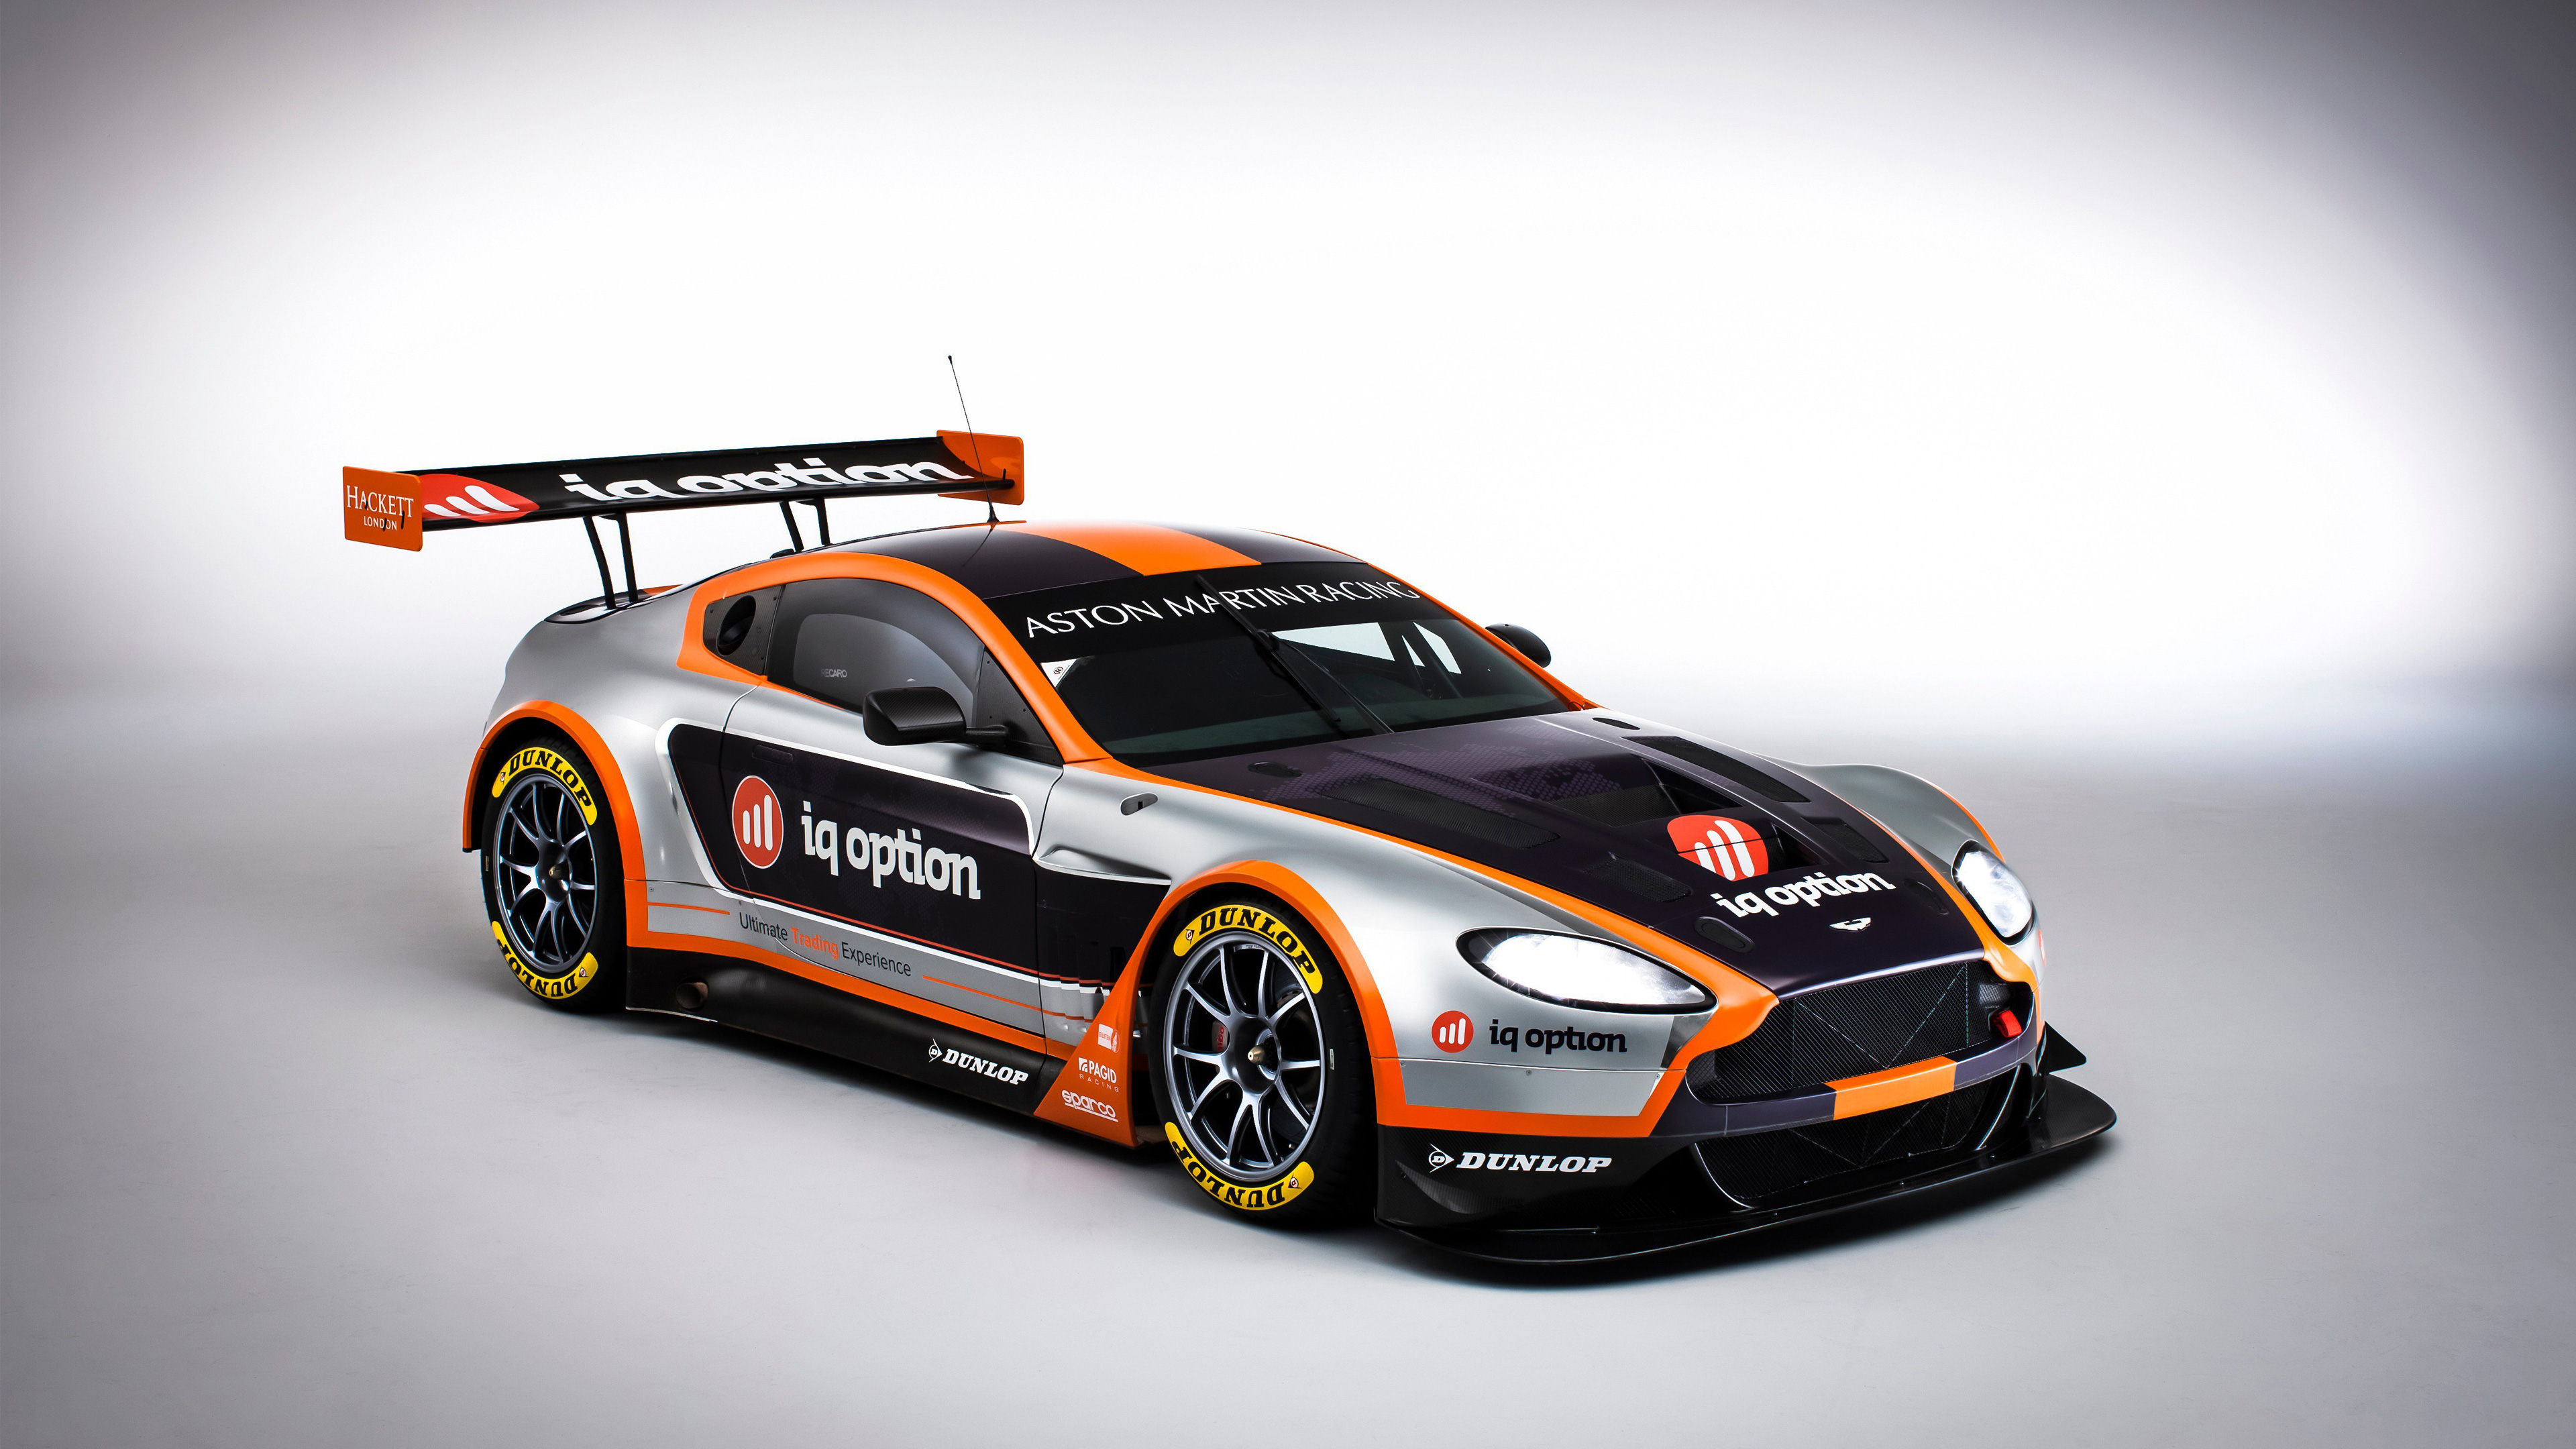 aston martin racing car wallpaper hd car wallpapers id 6392. Black Bedroom Furniture Sets. Home Design Ideas